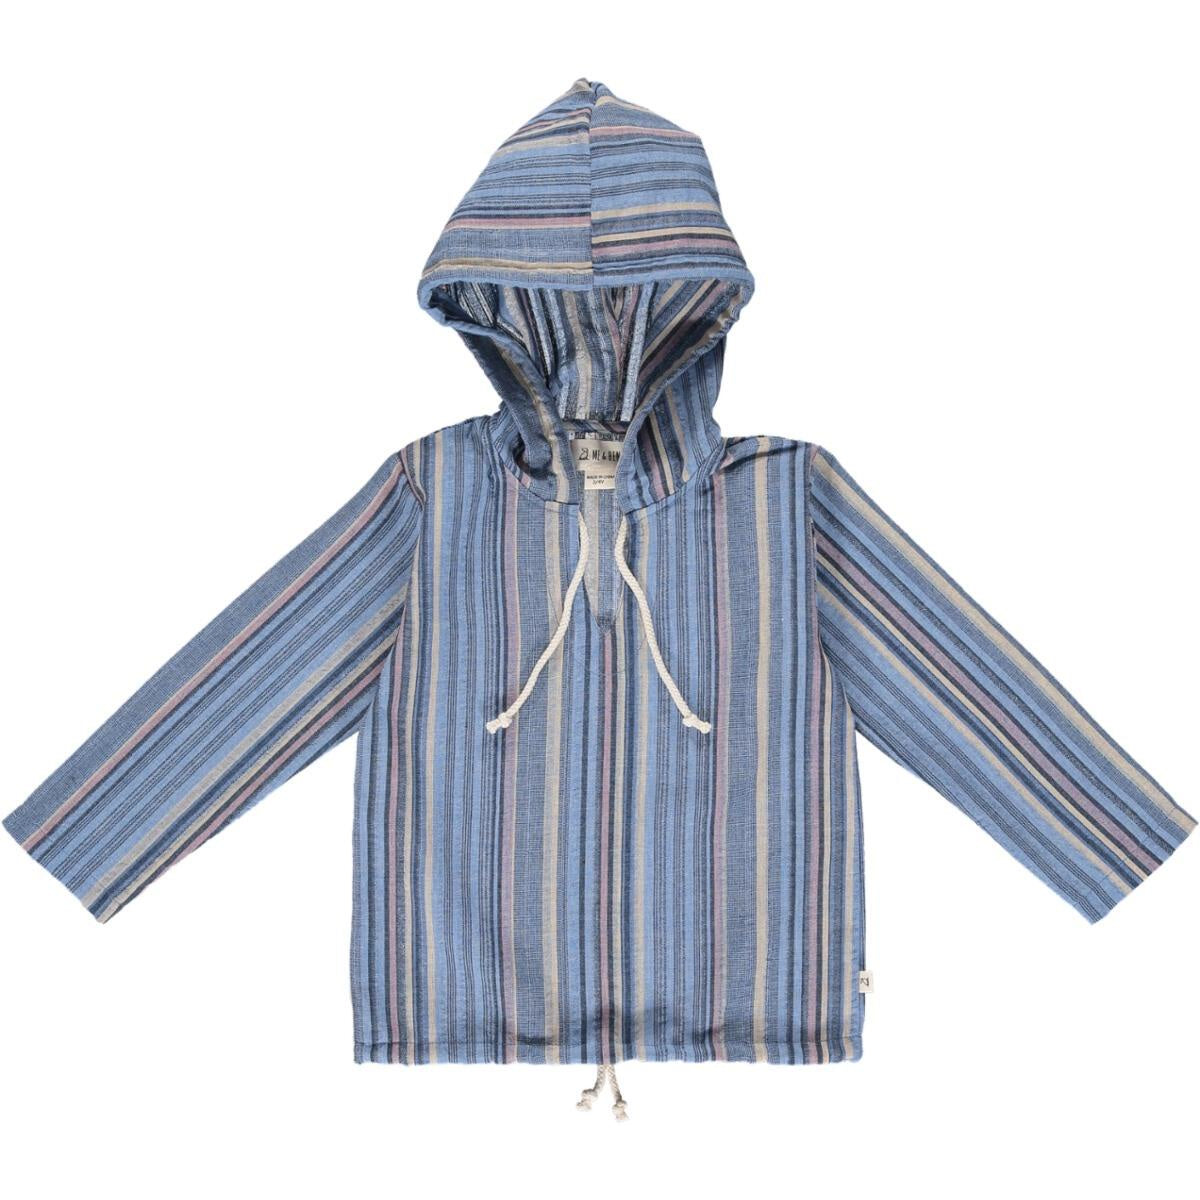 Gauze Hooded Top -  Blue Mutli Stripes